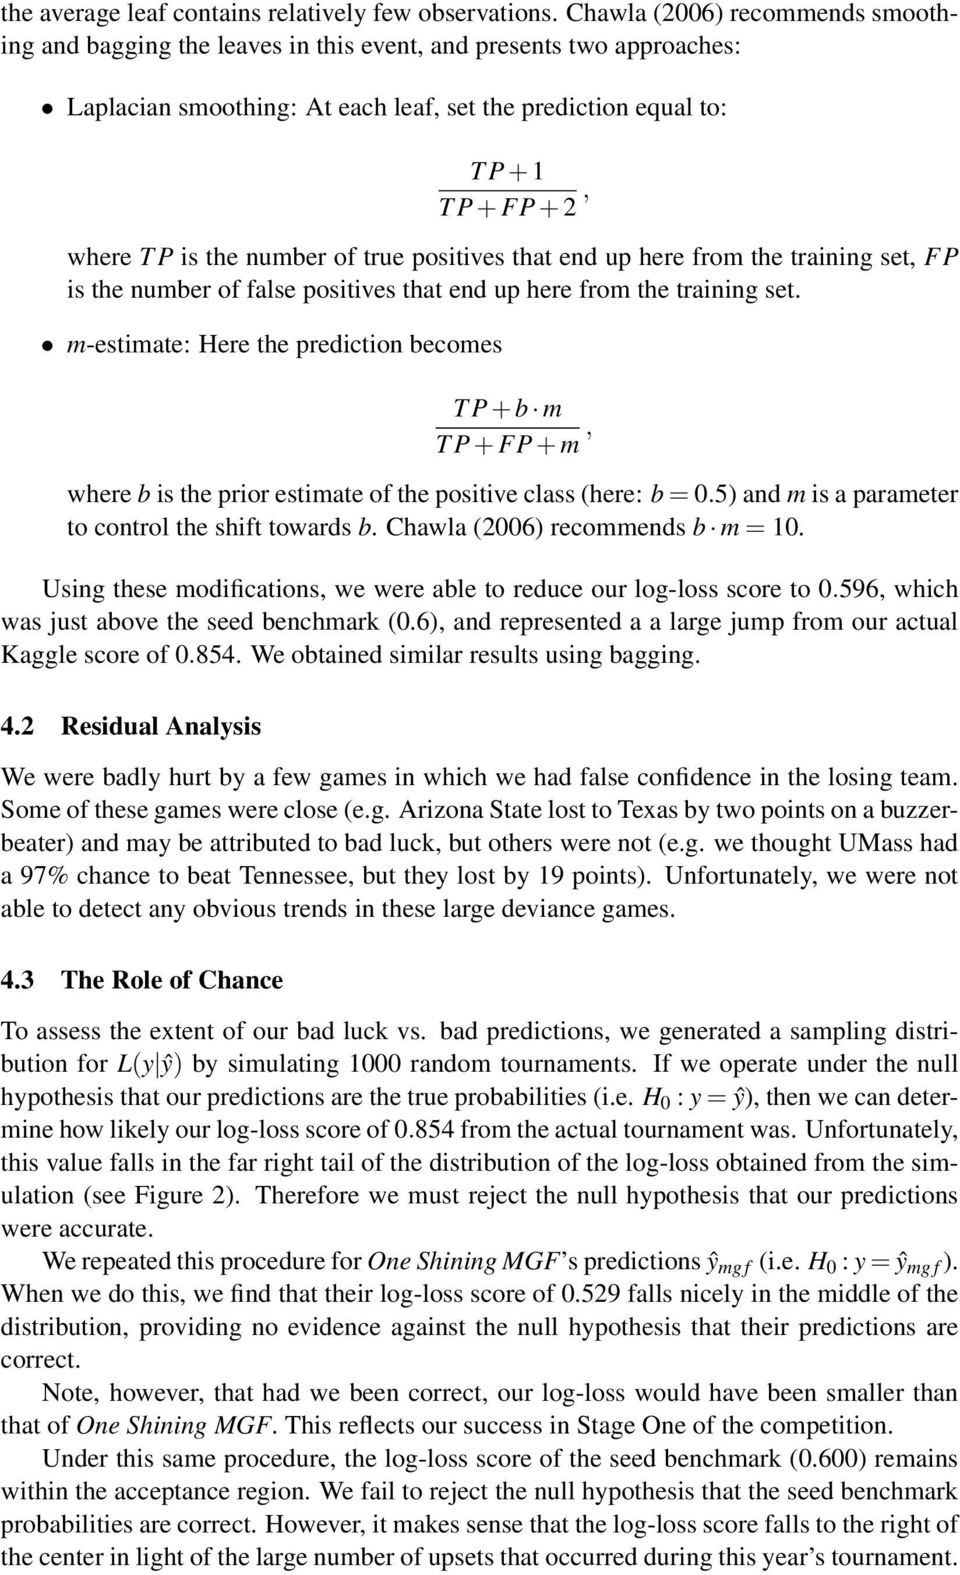 In Pursuit of Perfection: An Ensemble Method for Predicting